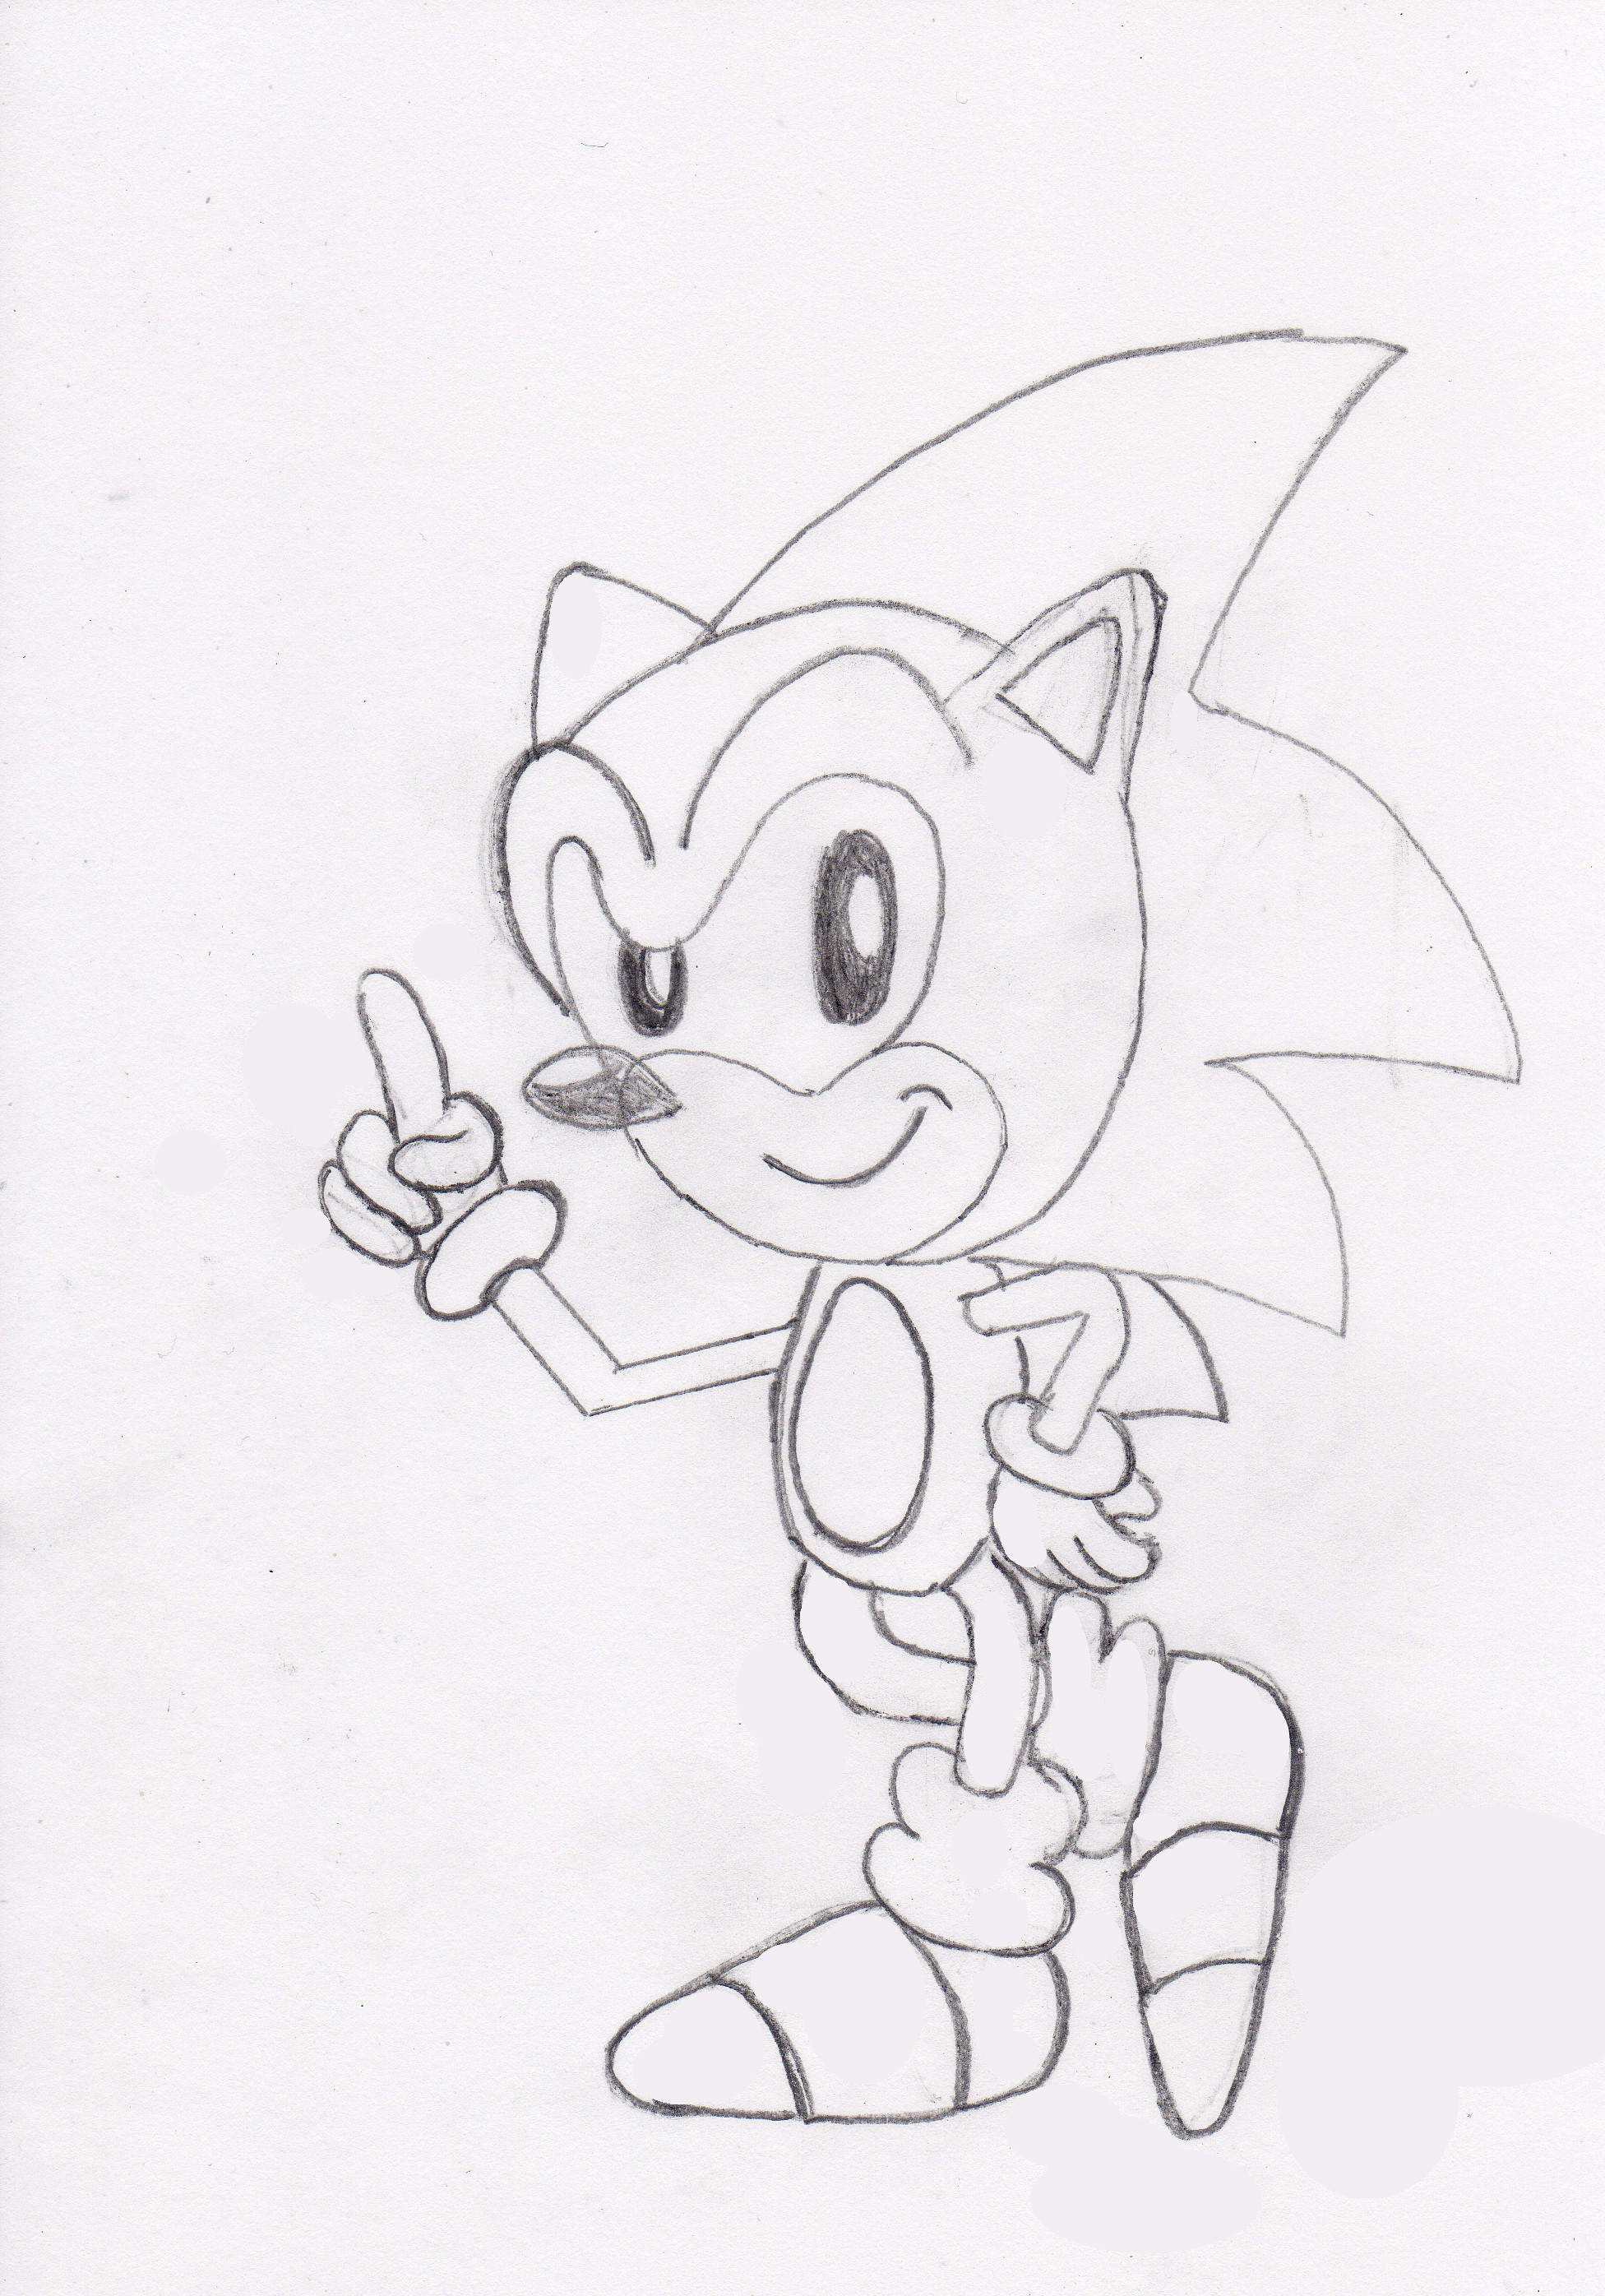 sonic satam coloring pages - photo#11